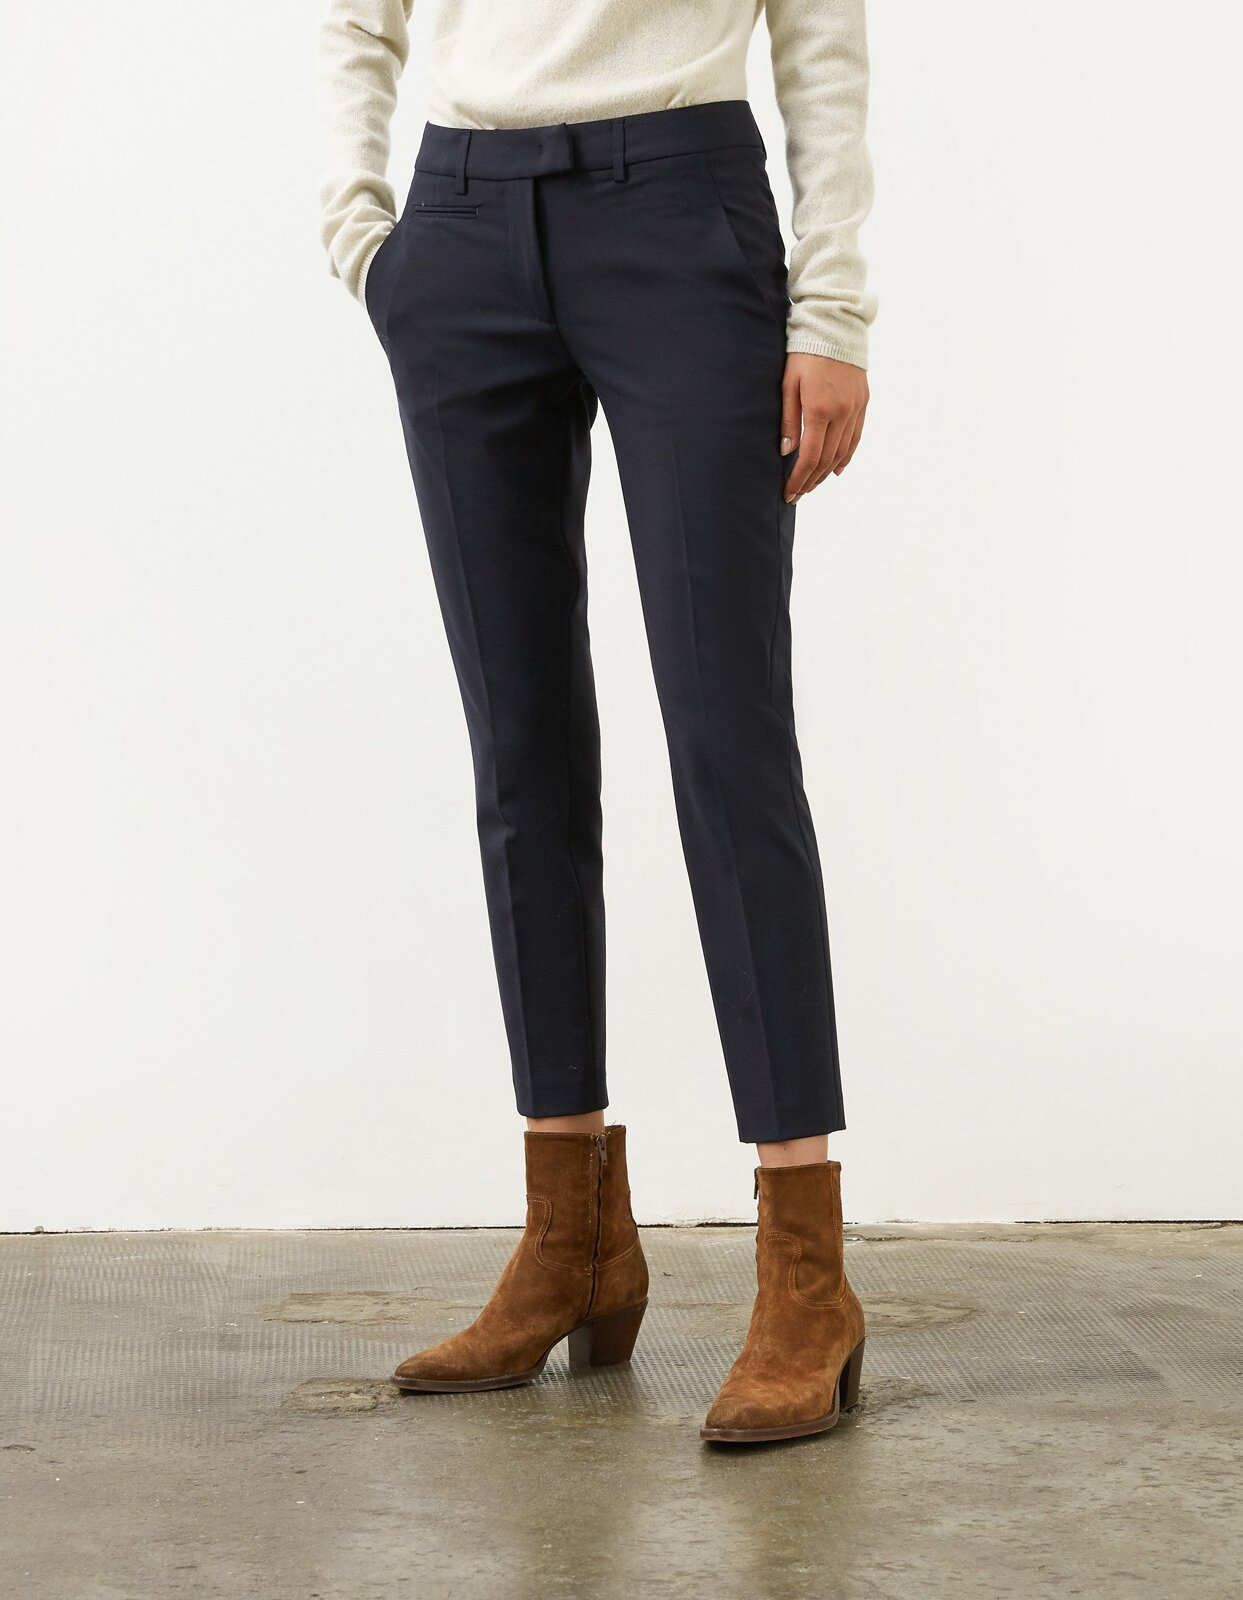 Pantalone slim Perfect in tela di lana - Dondup